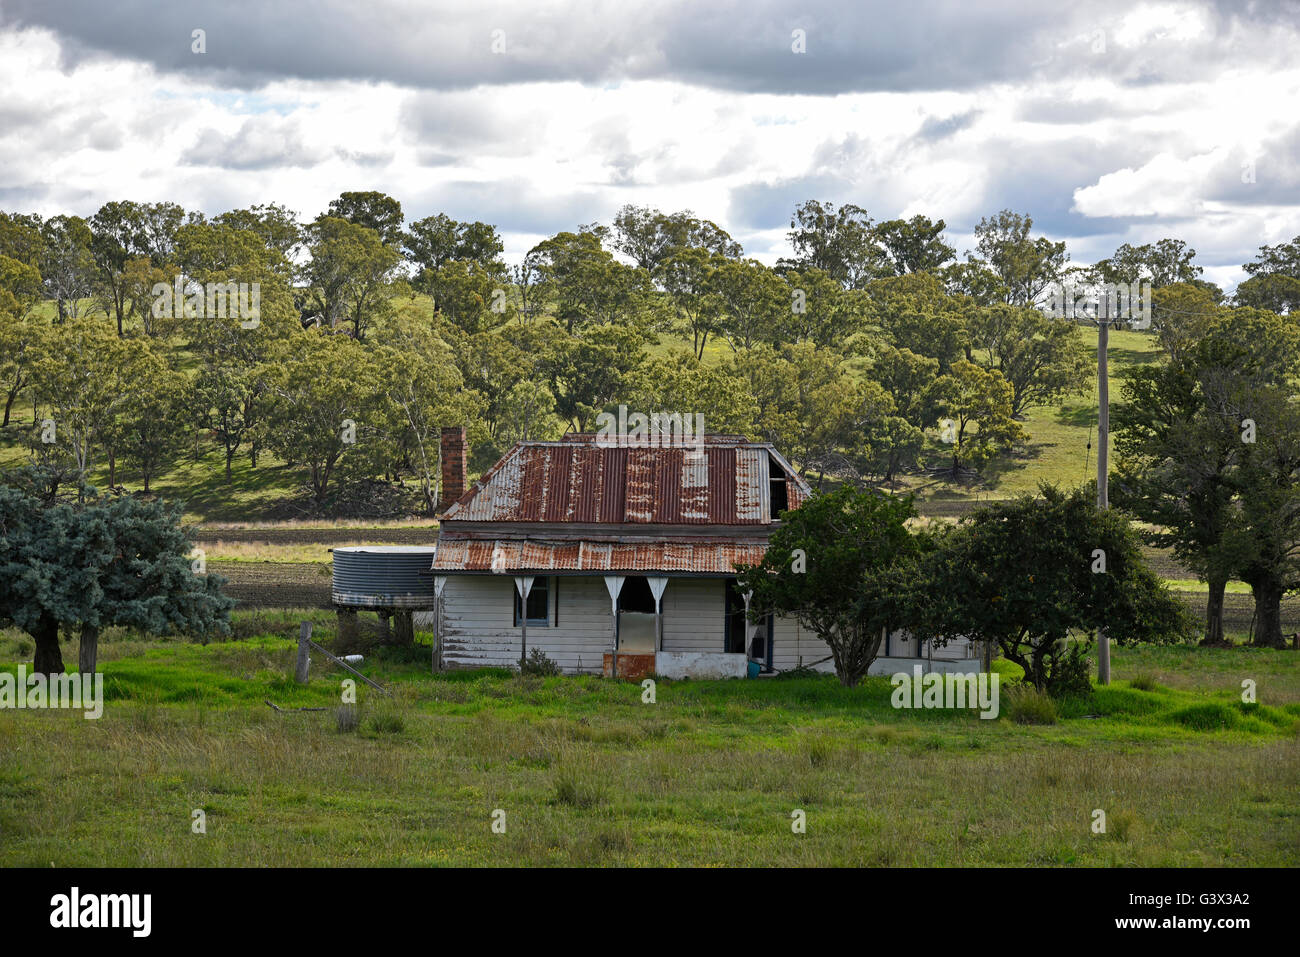 Typical Derelict Australian Bush Country House Stock Photo